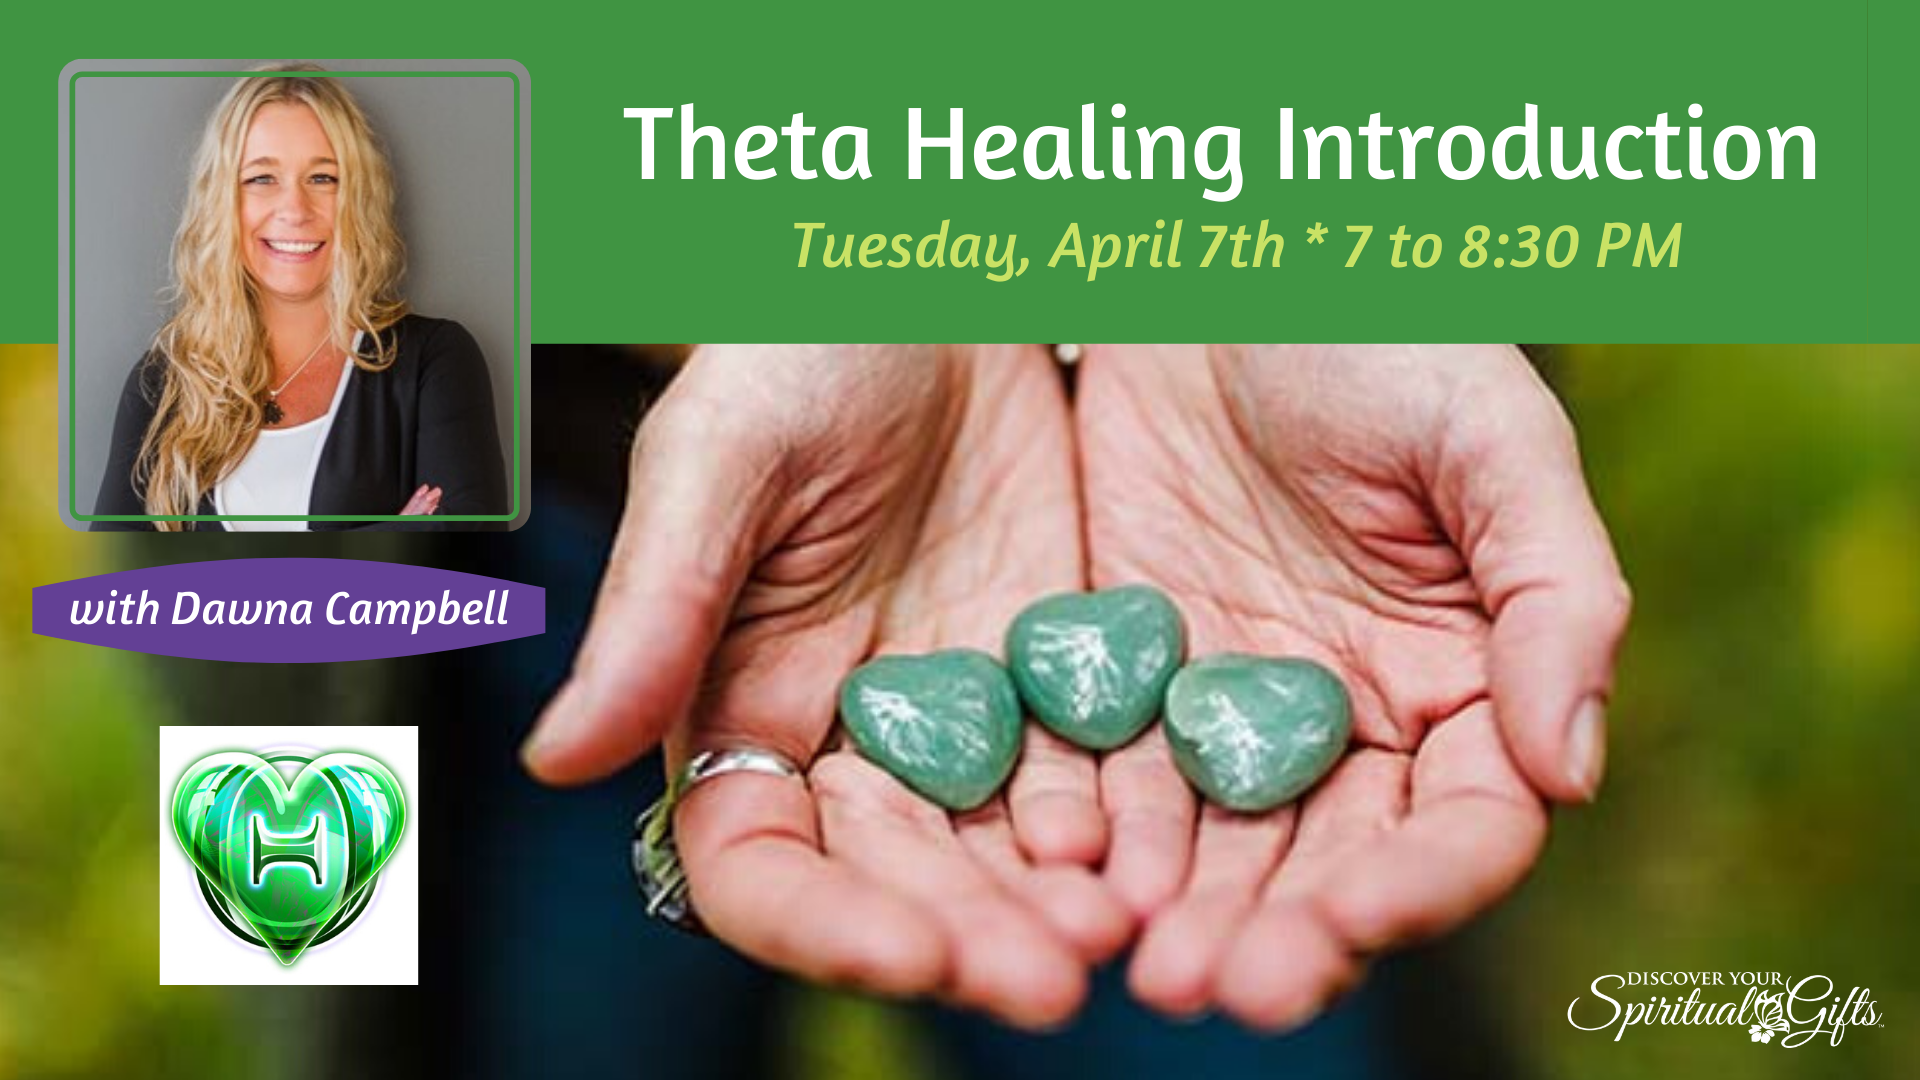 [ONLINE] ThetaHealing Introduction